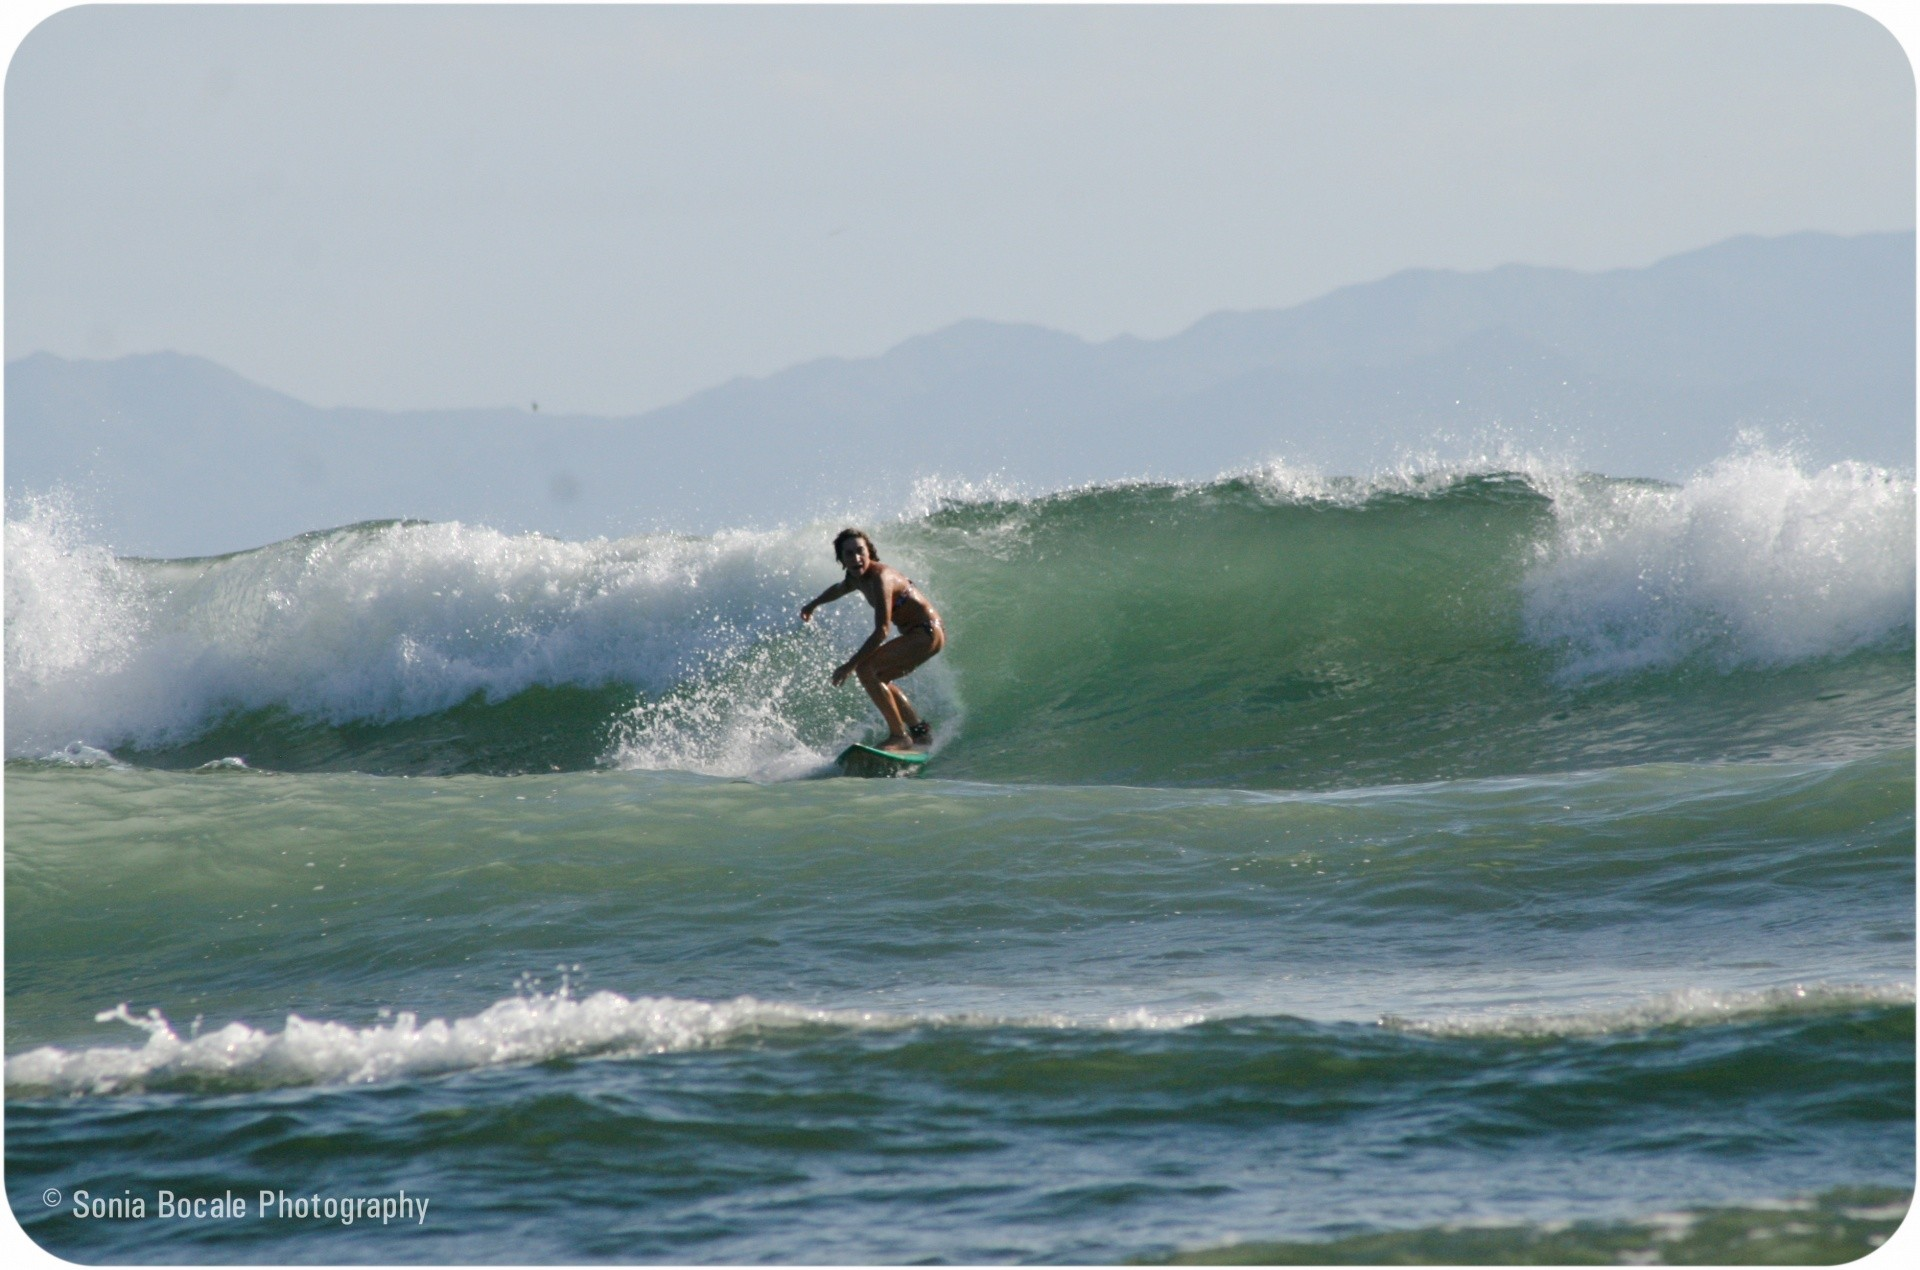 Sonia Bocale's photo of Playa Hermosa